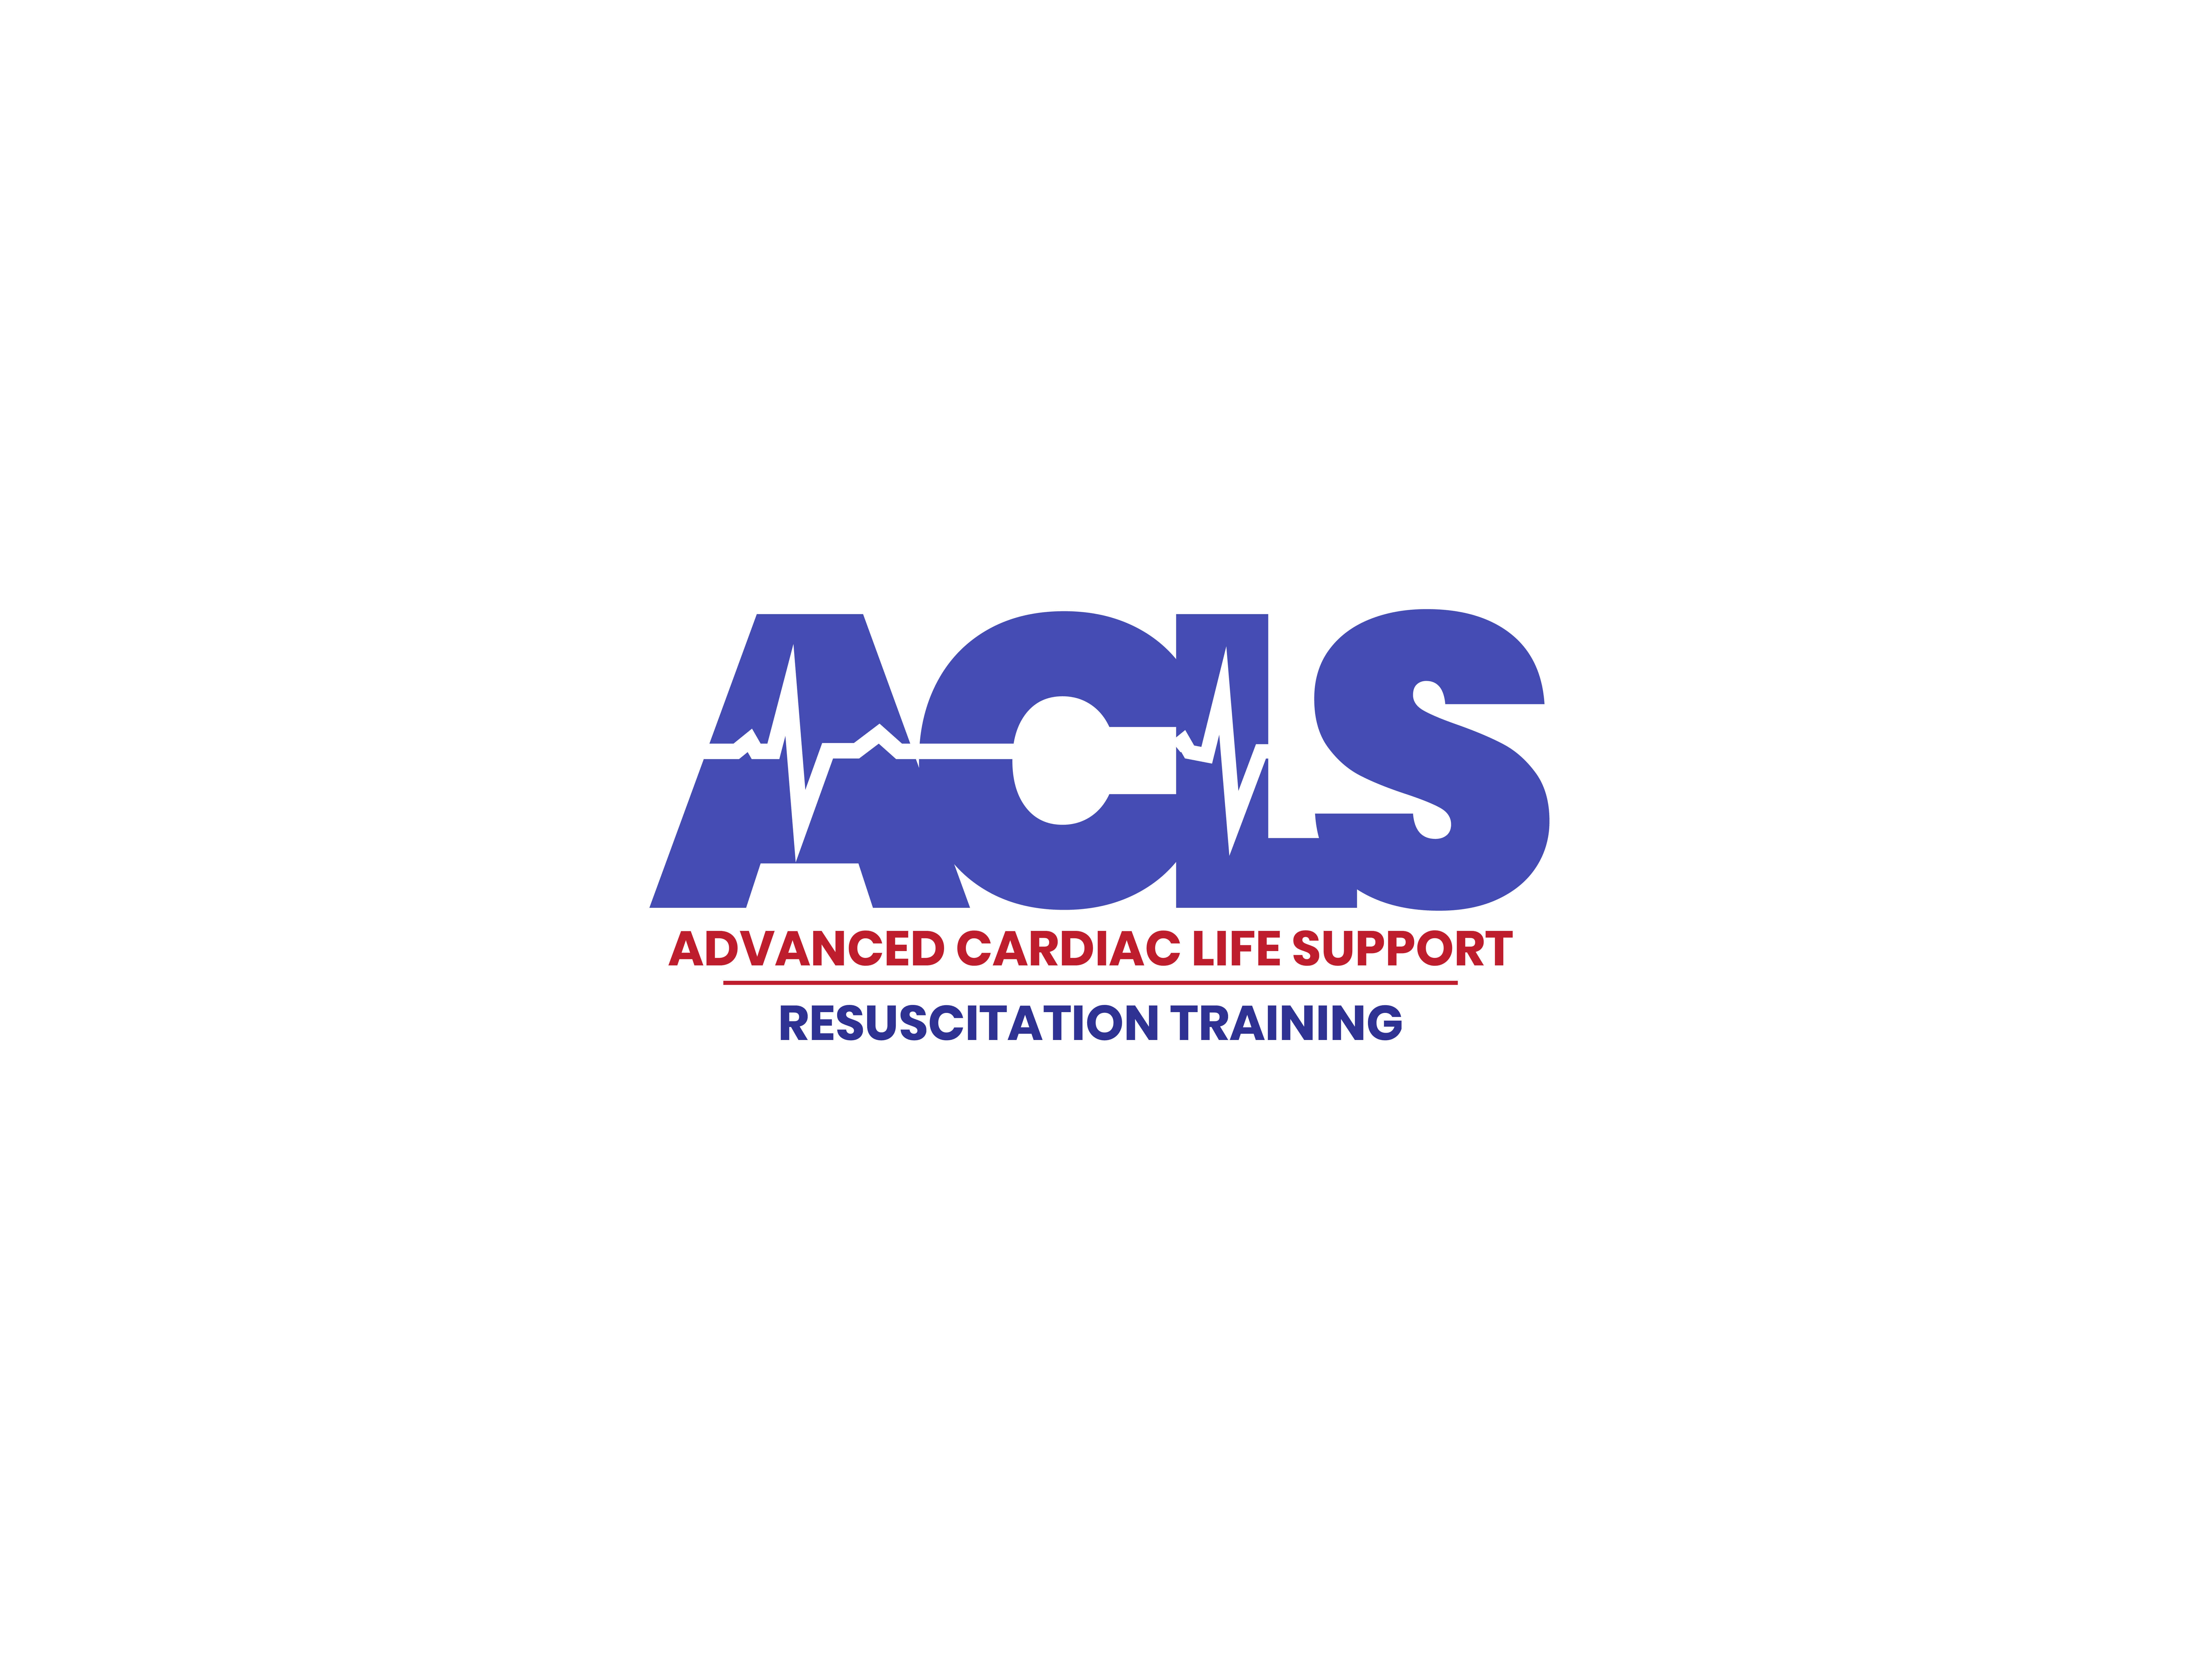 A logo we created for ACLS